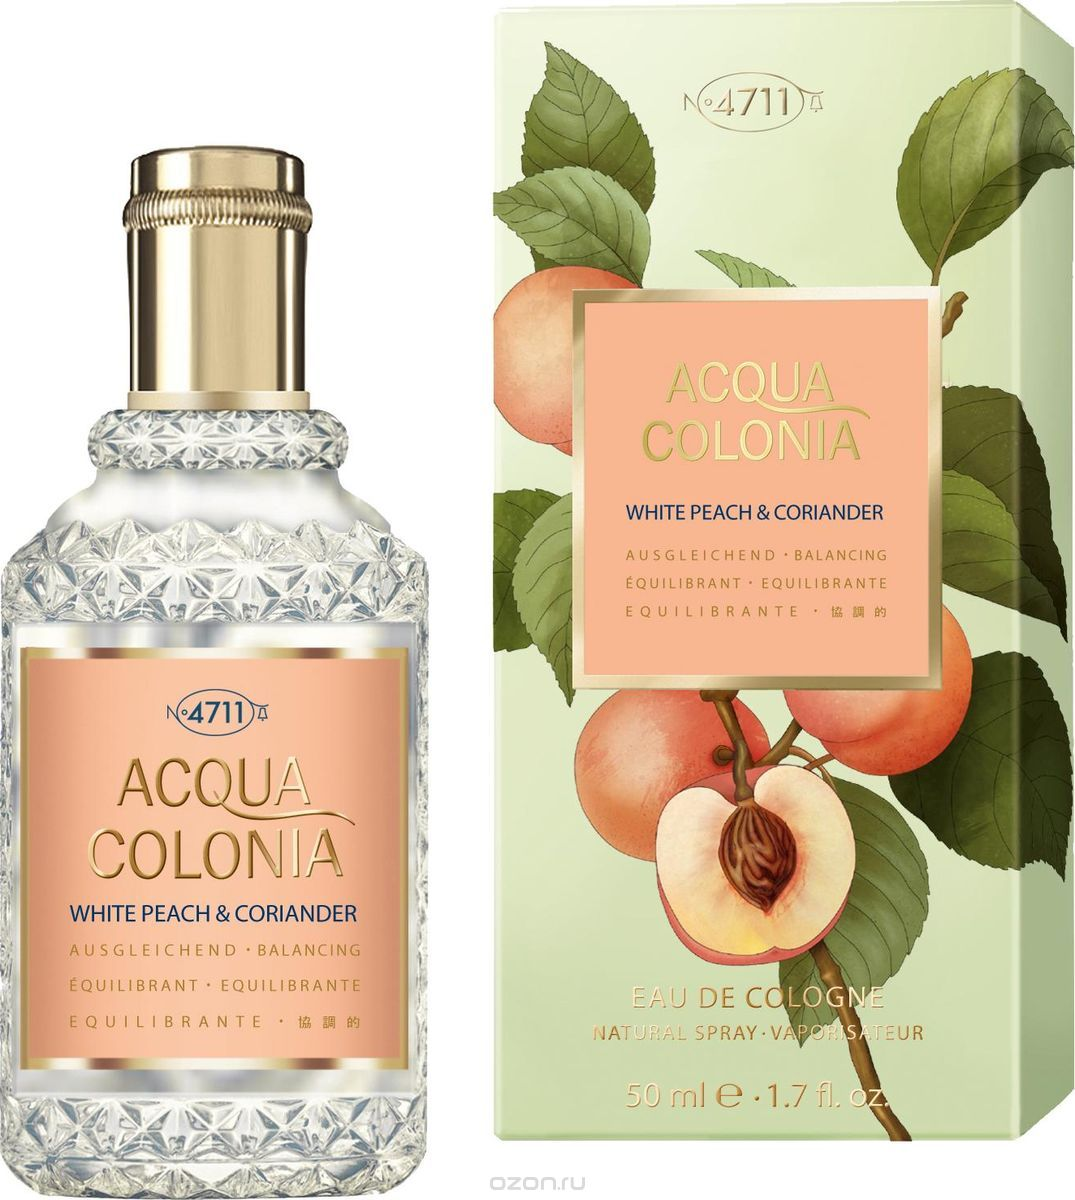 4711 Acqua Colonia Balancing White Peach & Coriander ќдеколон, 50 мл